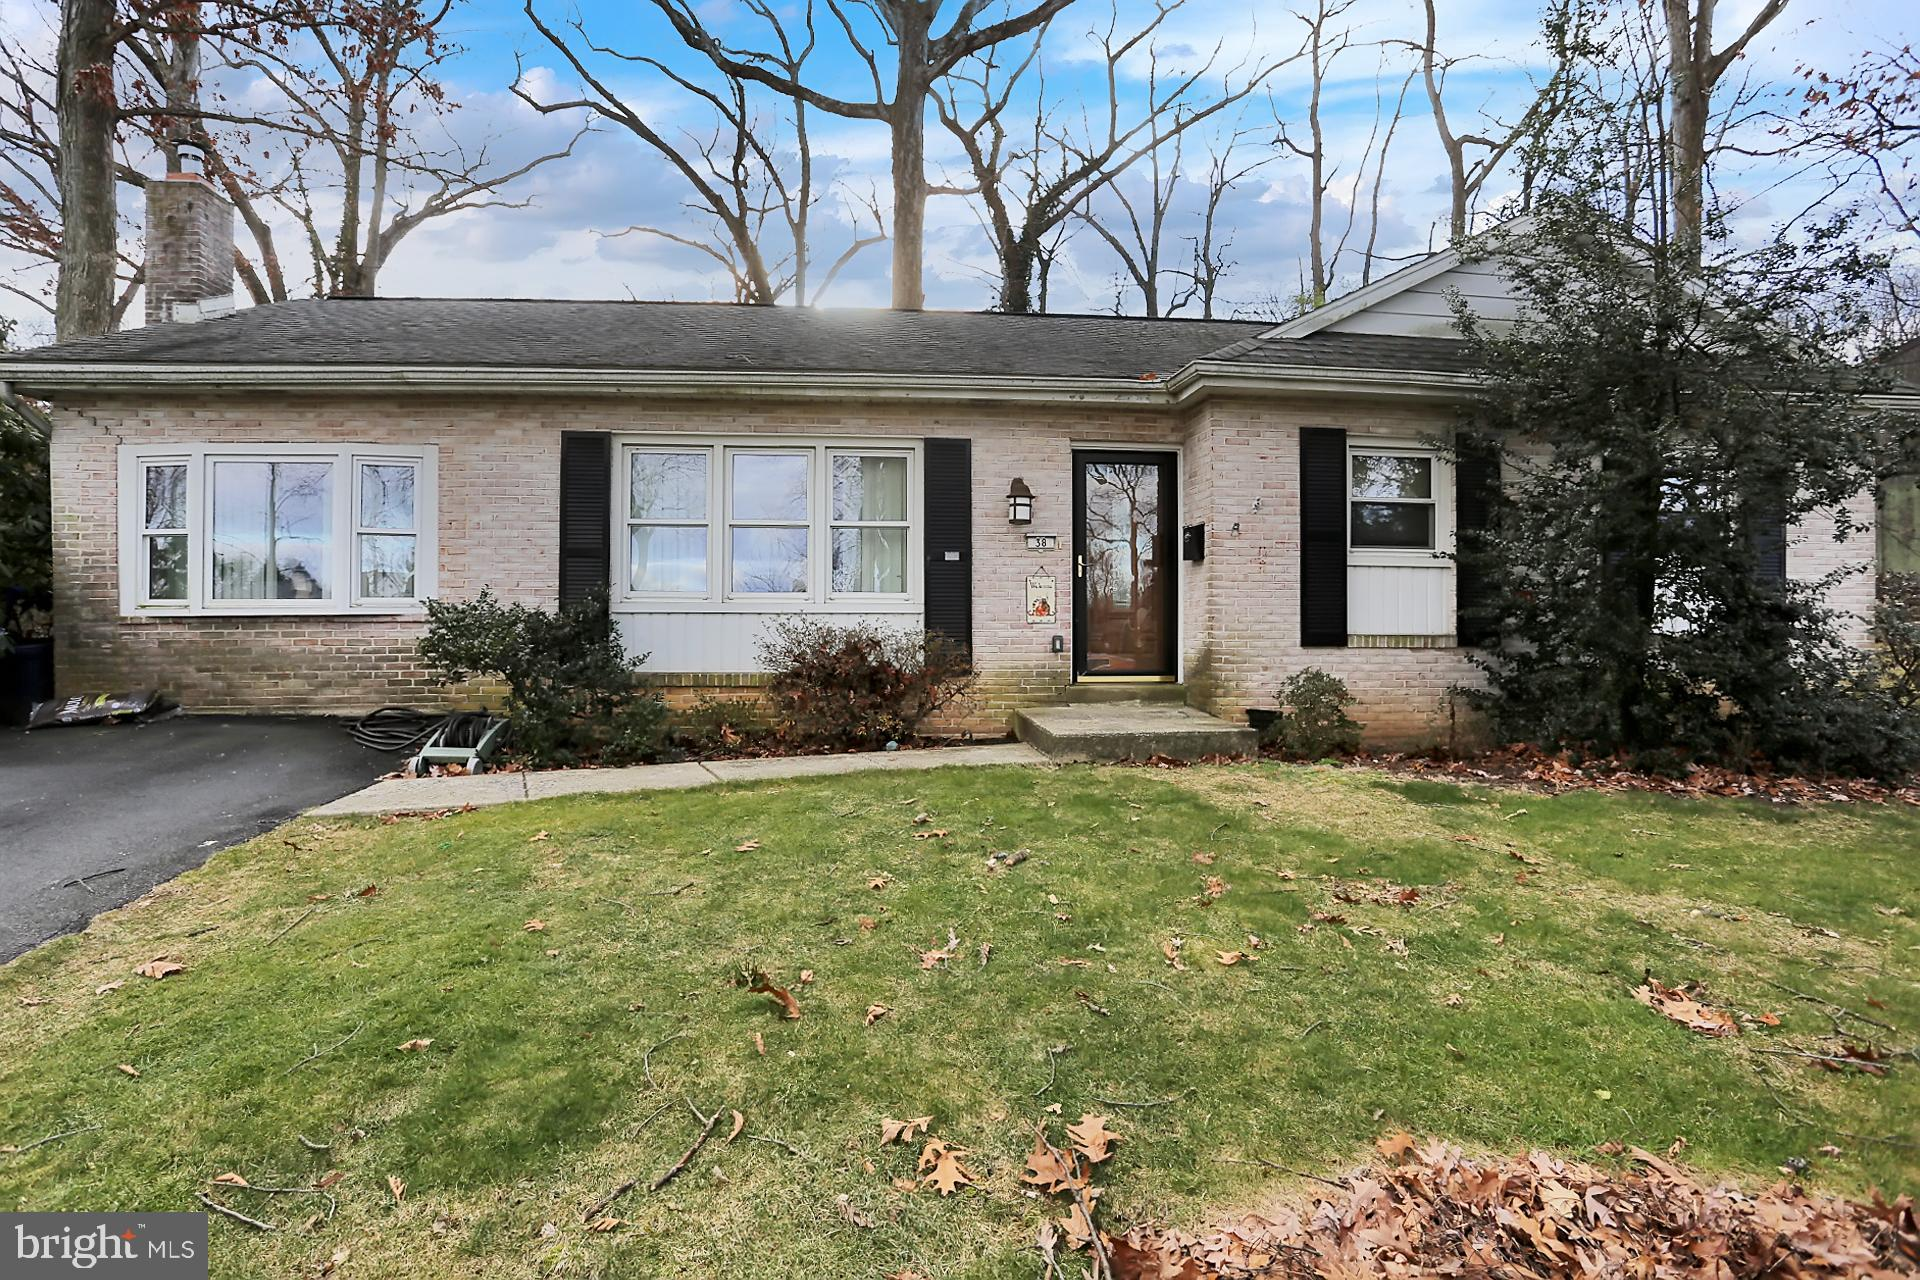 Come see this affordable three bedroom home in Wyomissing with Wilson Schools.  It is set on a quiet out of the way lot with mature trees and landscaping. The interior has numerous upgrades.  The living room fire place has an efficiency insert that keeps the main level toasty regardless of the frost on the windows. The baseboard heat was replaced with a heat pump in the attic which provides plenty of warmth in winter and cool comfort in the summer. The heat pump was installed about 2009 and replaced and upgraded in 2016. The baseboard elect heating was never removed and left as an unused backup. The basement is professionally finished into a laundry, library, and family room. This home won't last long.  Make sure your Buyers see it before its gone.